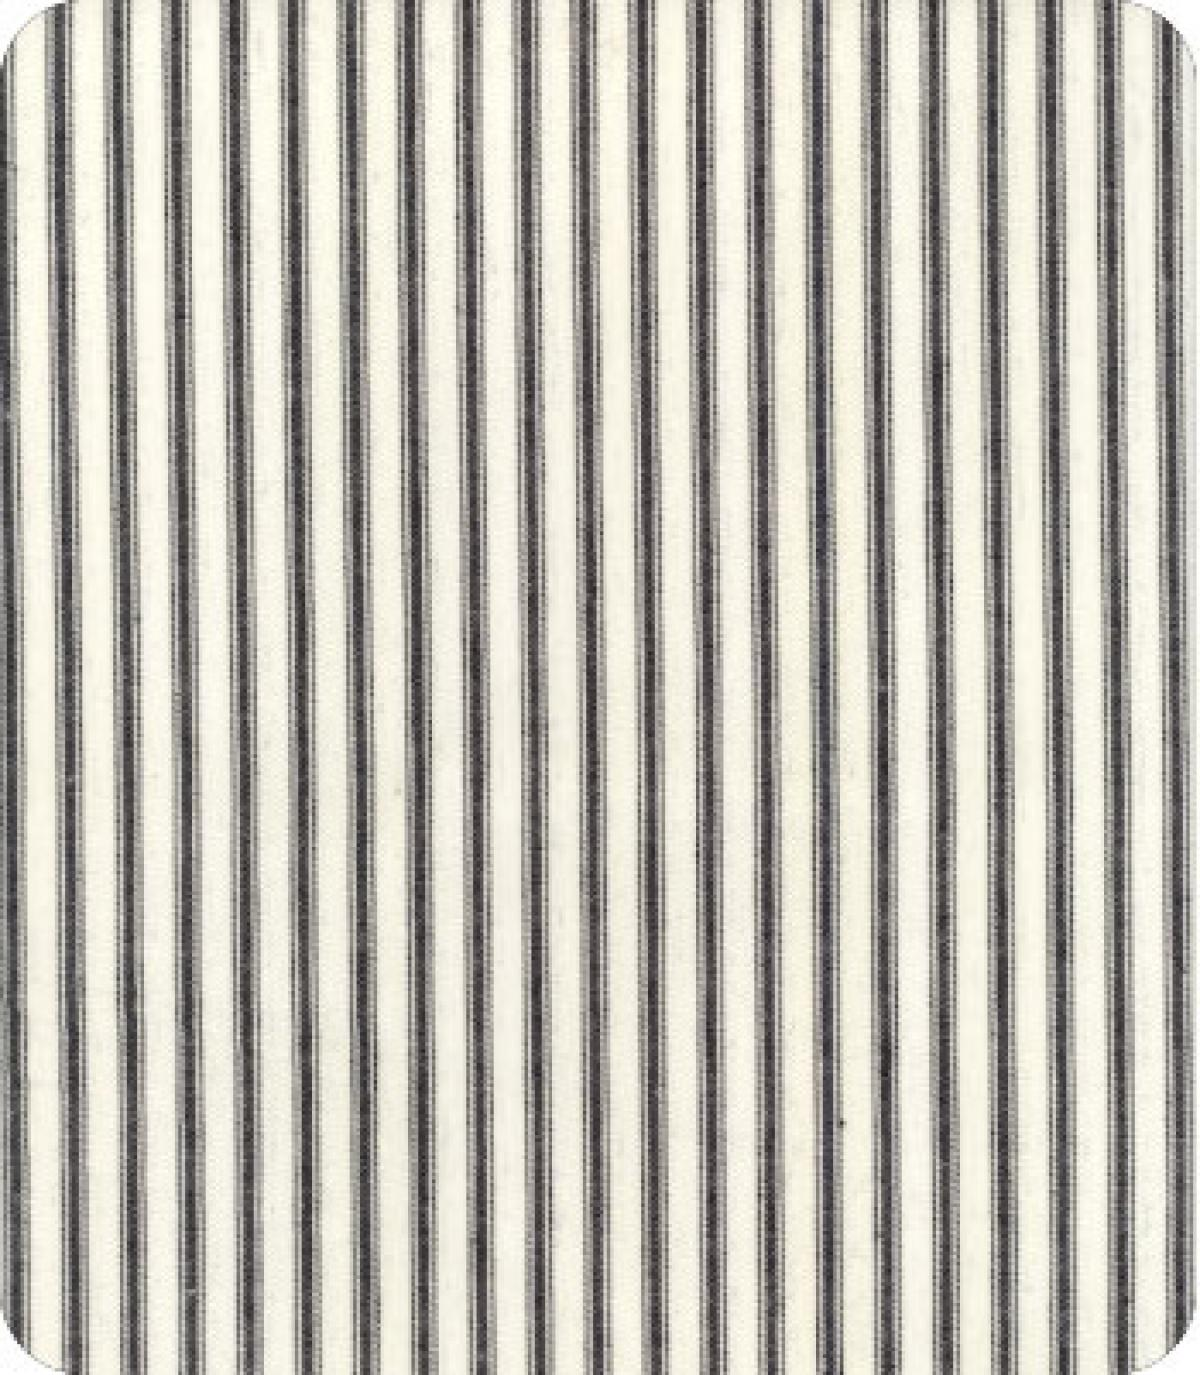 Woven Ticking